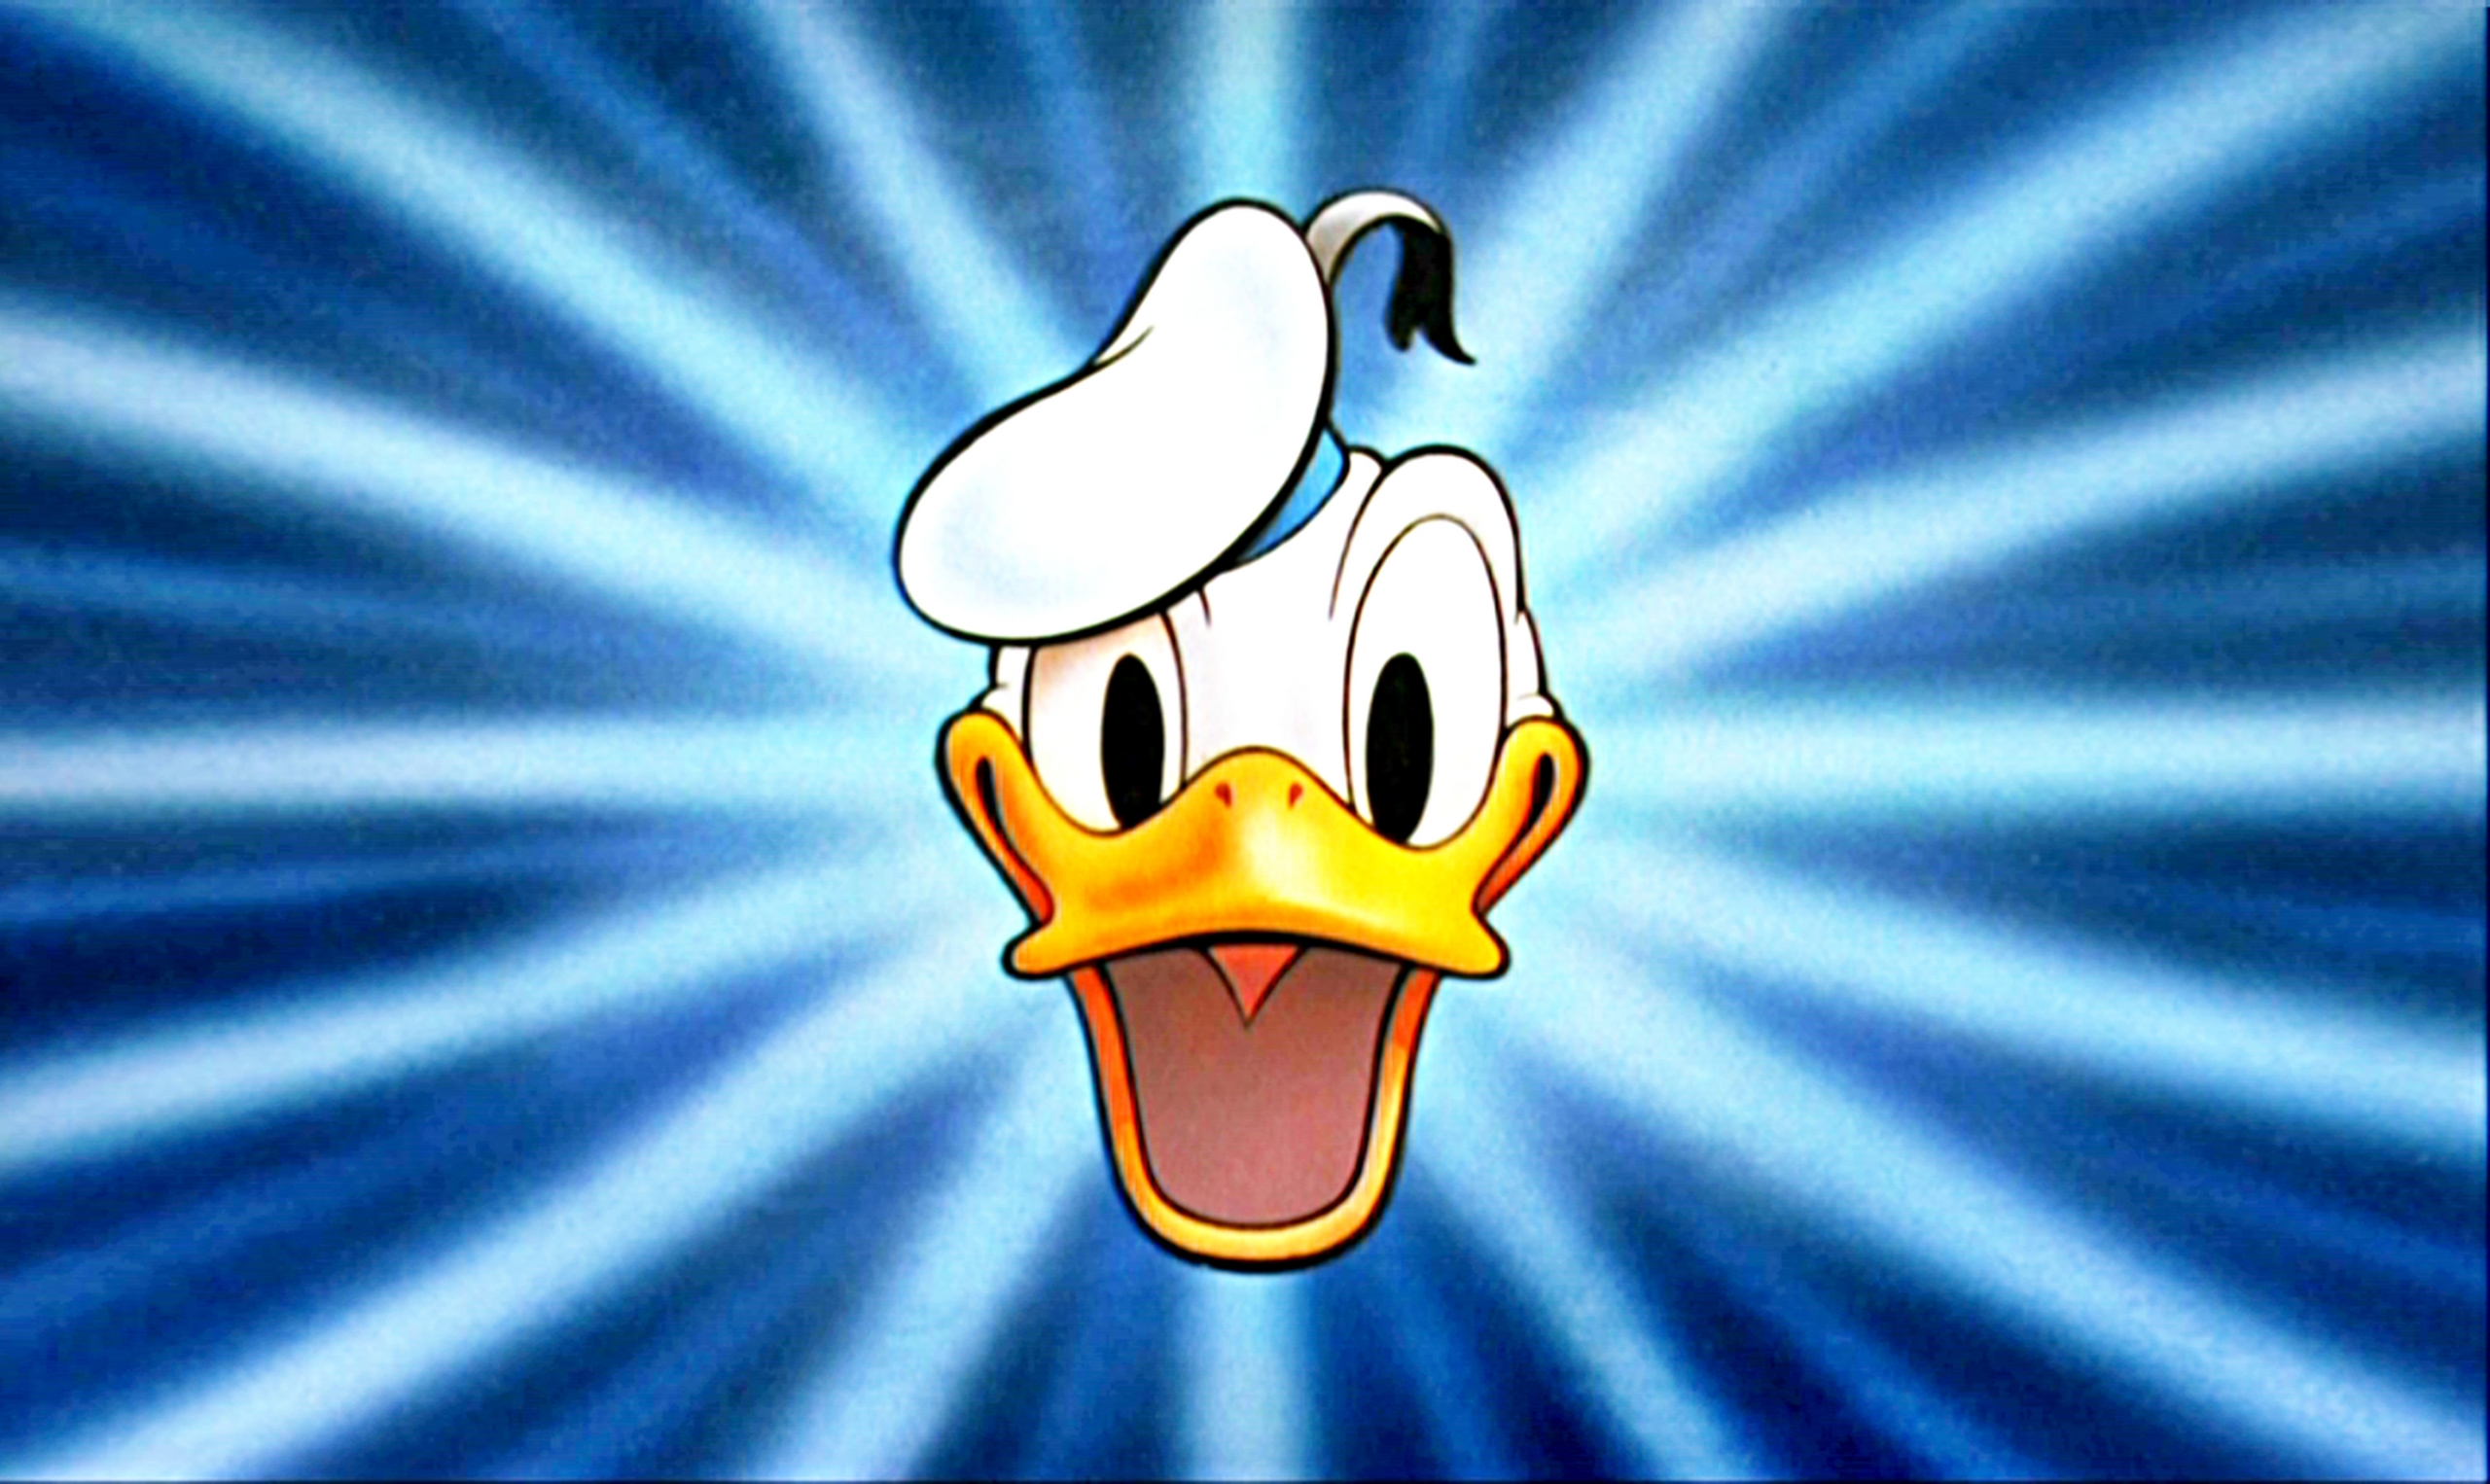 donald duck Donald duck might be quick-tempered when things don't go his way, but he has a heart of gold and is very devoted to his friends.